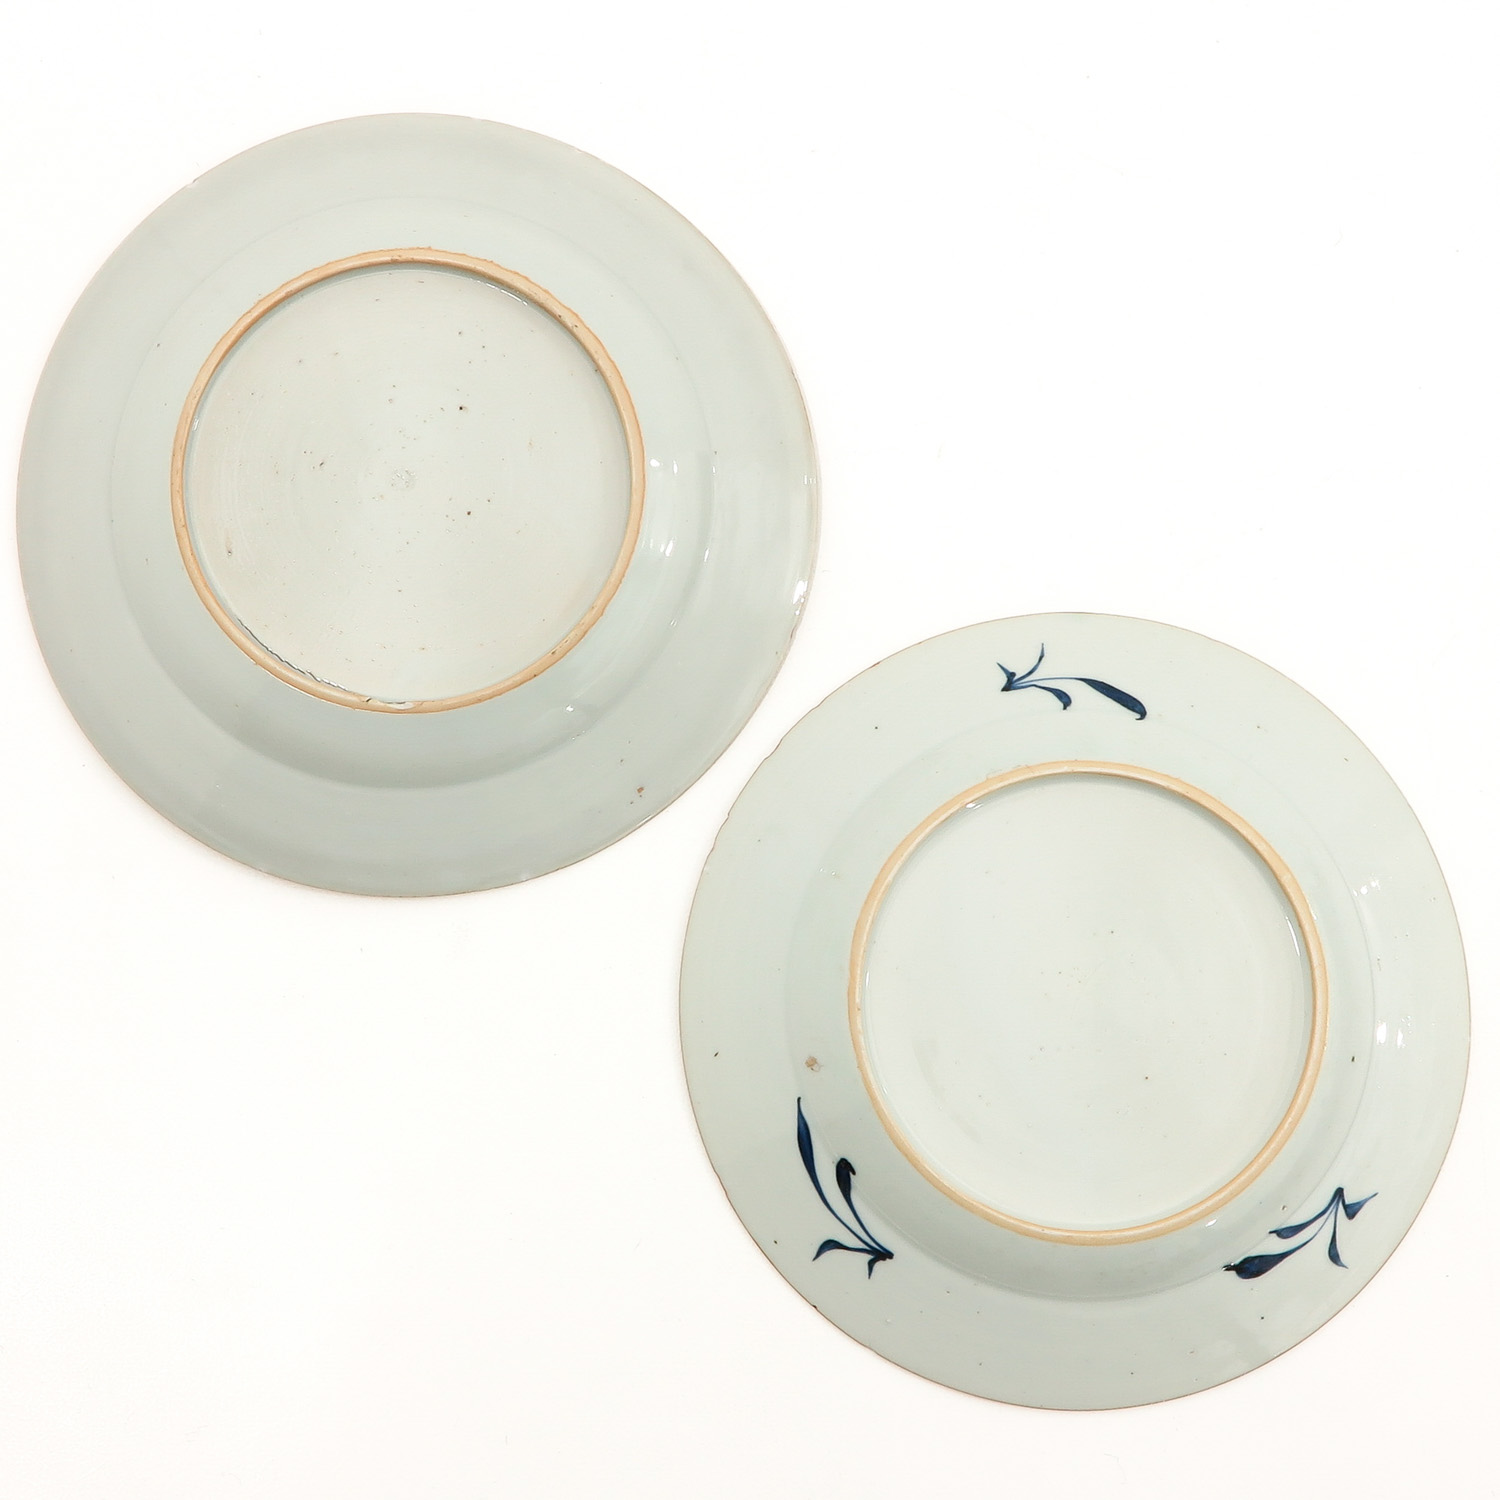 A Series of 6 Blue and White Plates - Image 4 of 10